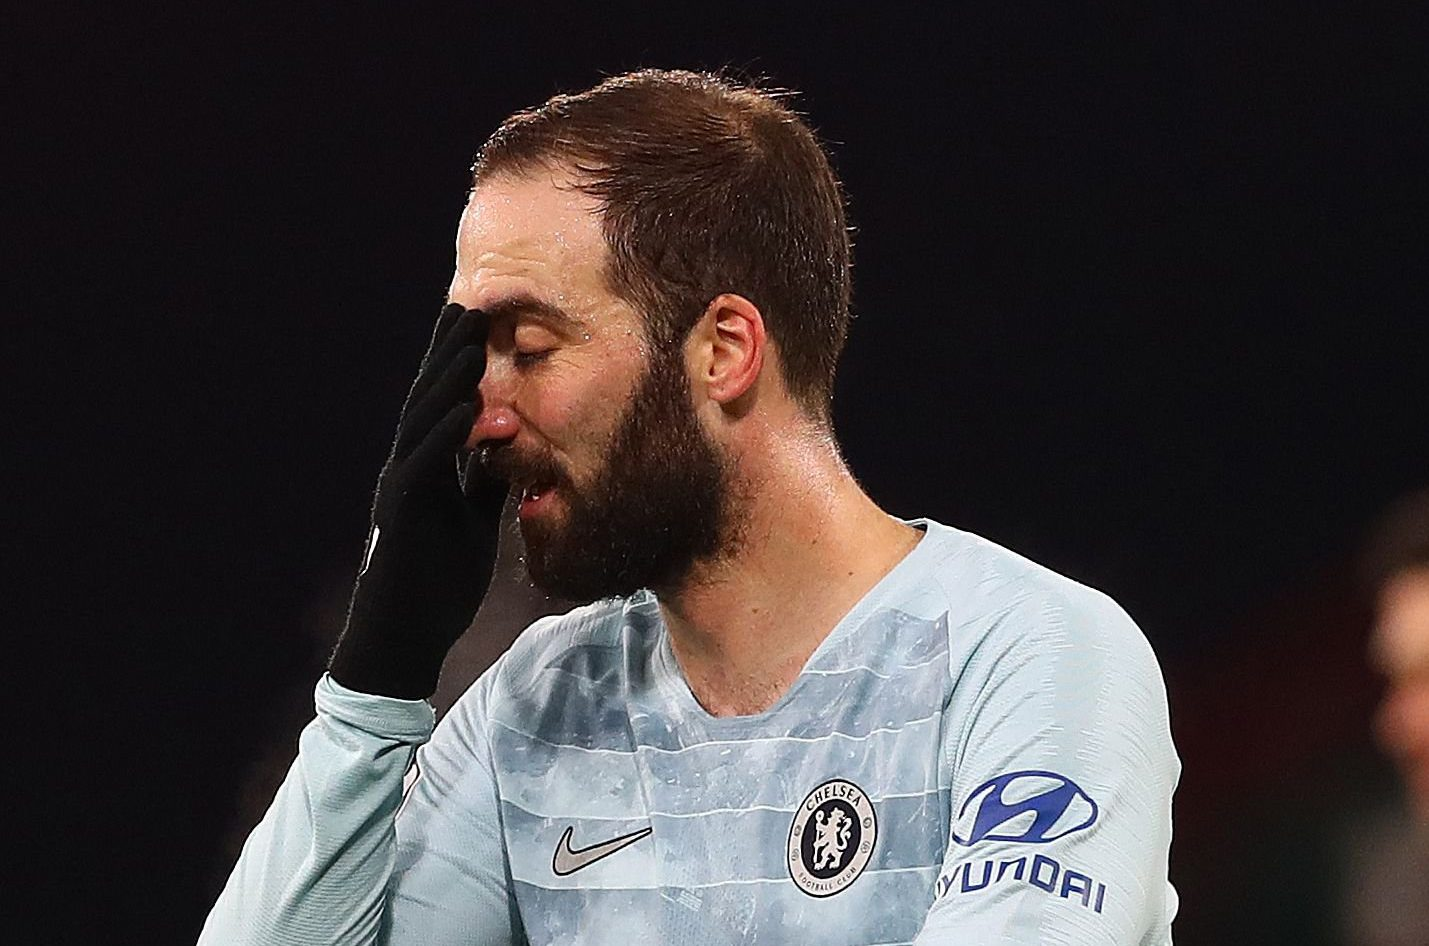 Maurizio Sarri admits Gonzalo Higuain is 'not in good shape' after Chelsea get hammered by Bournemouth